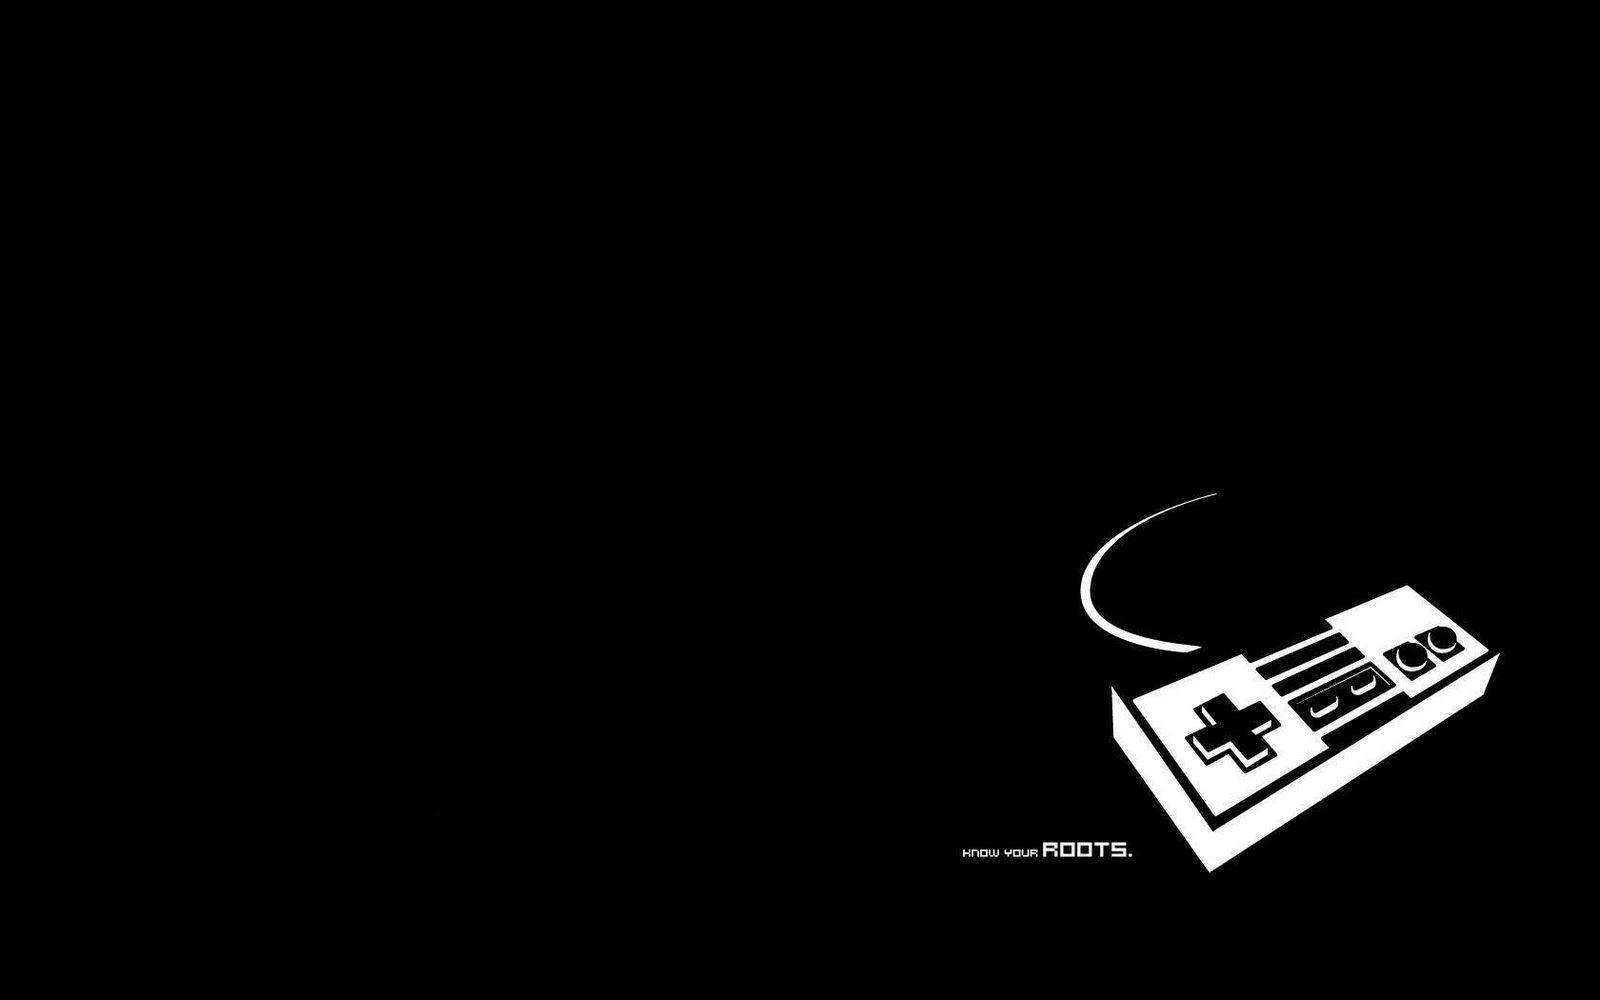 Video Games Wallpapers 1600x1000